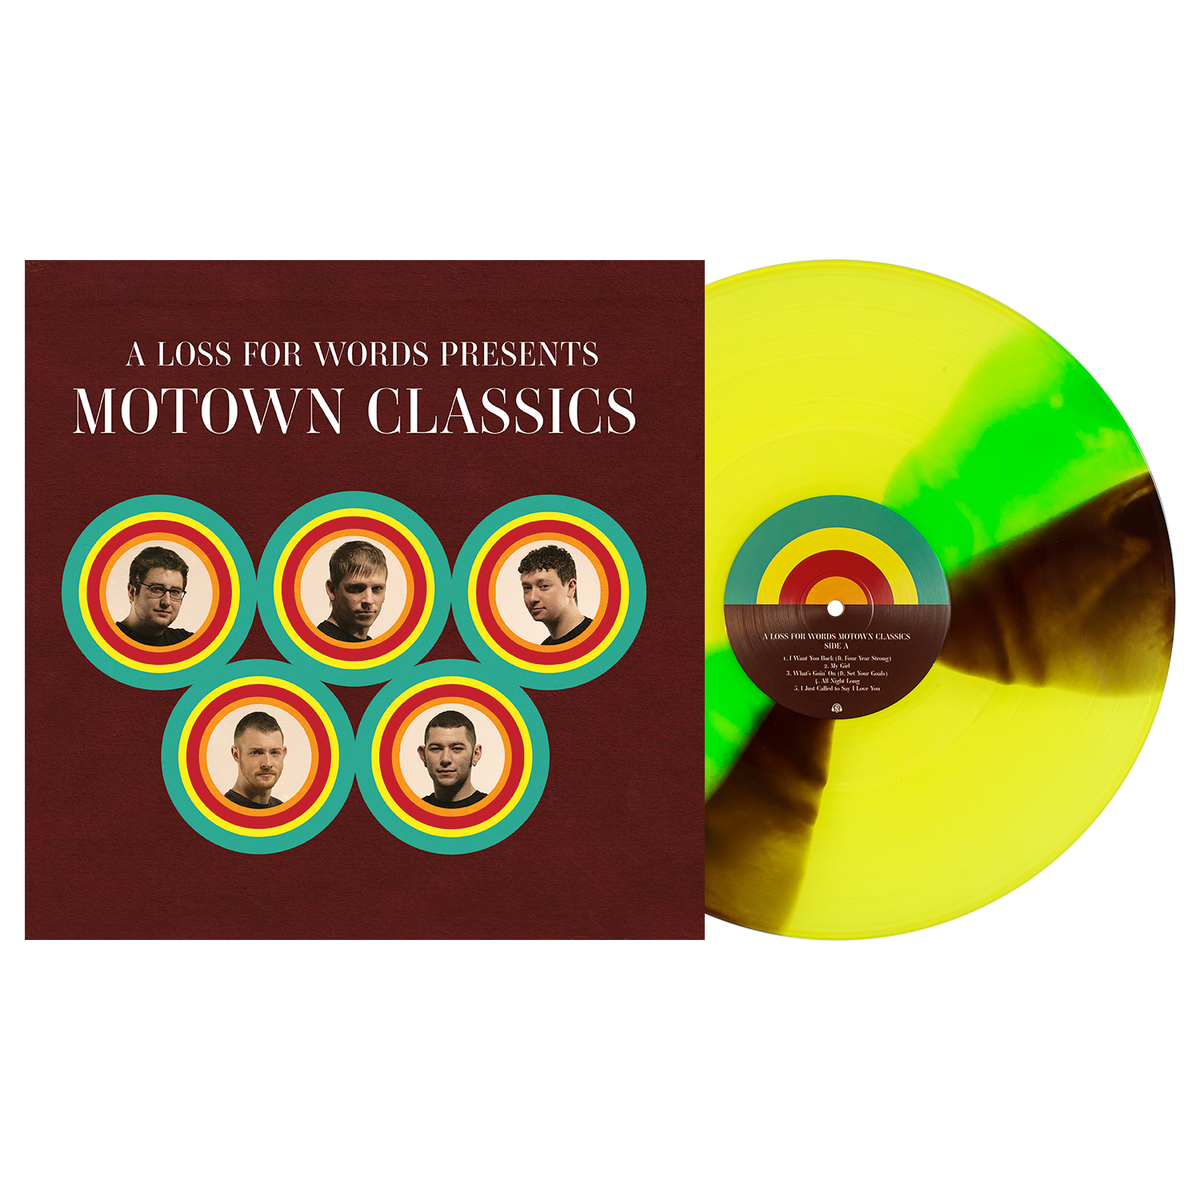 A Loss For Words 'Motown Classics' PN Exclusive 1 - Highlighter Yellow, w/ Neon Green & Brown Twist